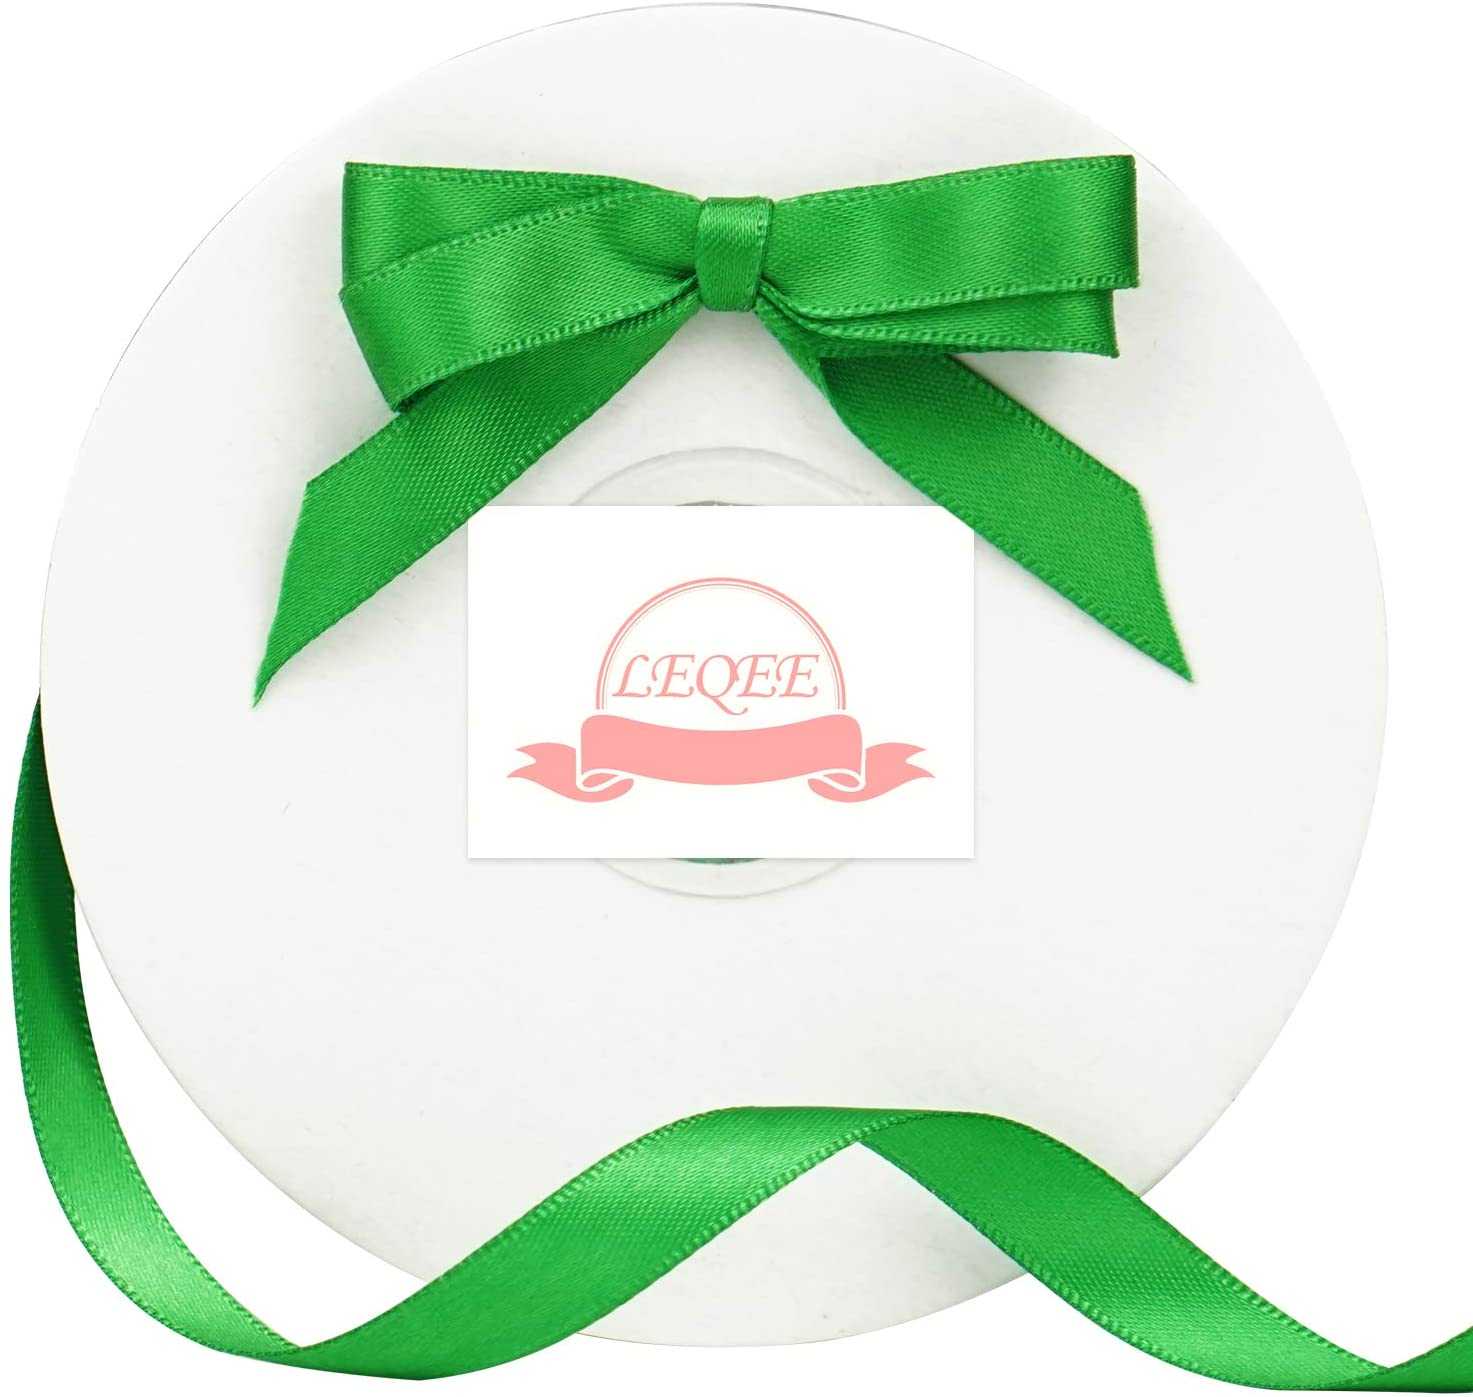 LEQEE 3/8 Inch Green Double Faced Satin Ribbon 50 Yard/Roll Variety of Colors for Crafts Hair Ribbon Bows Gift Wrapping Dancer Wand Wedding Party Cake Package and Other Projects